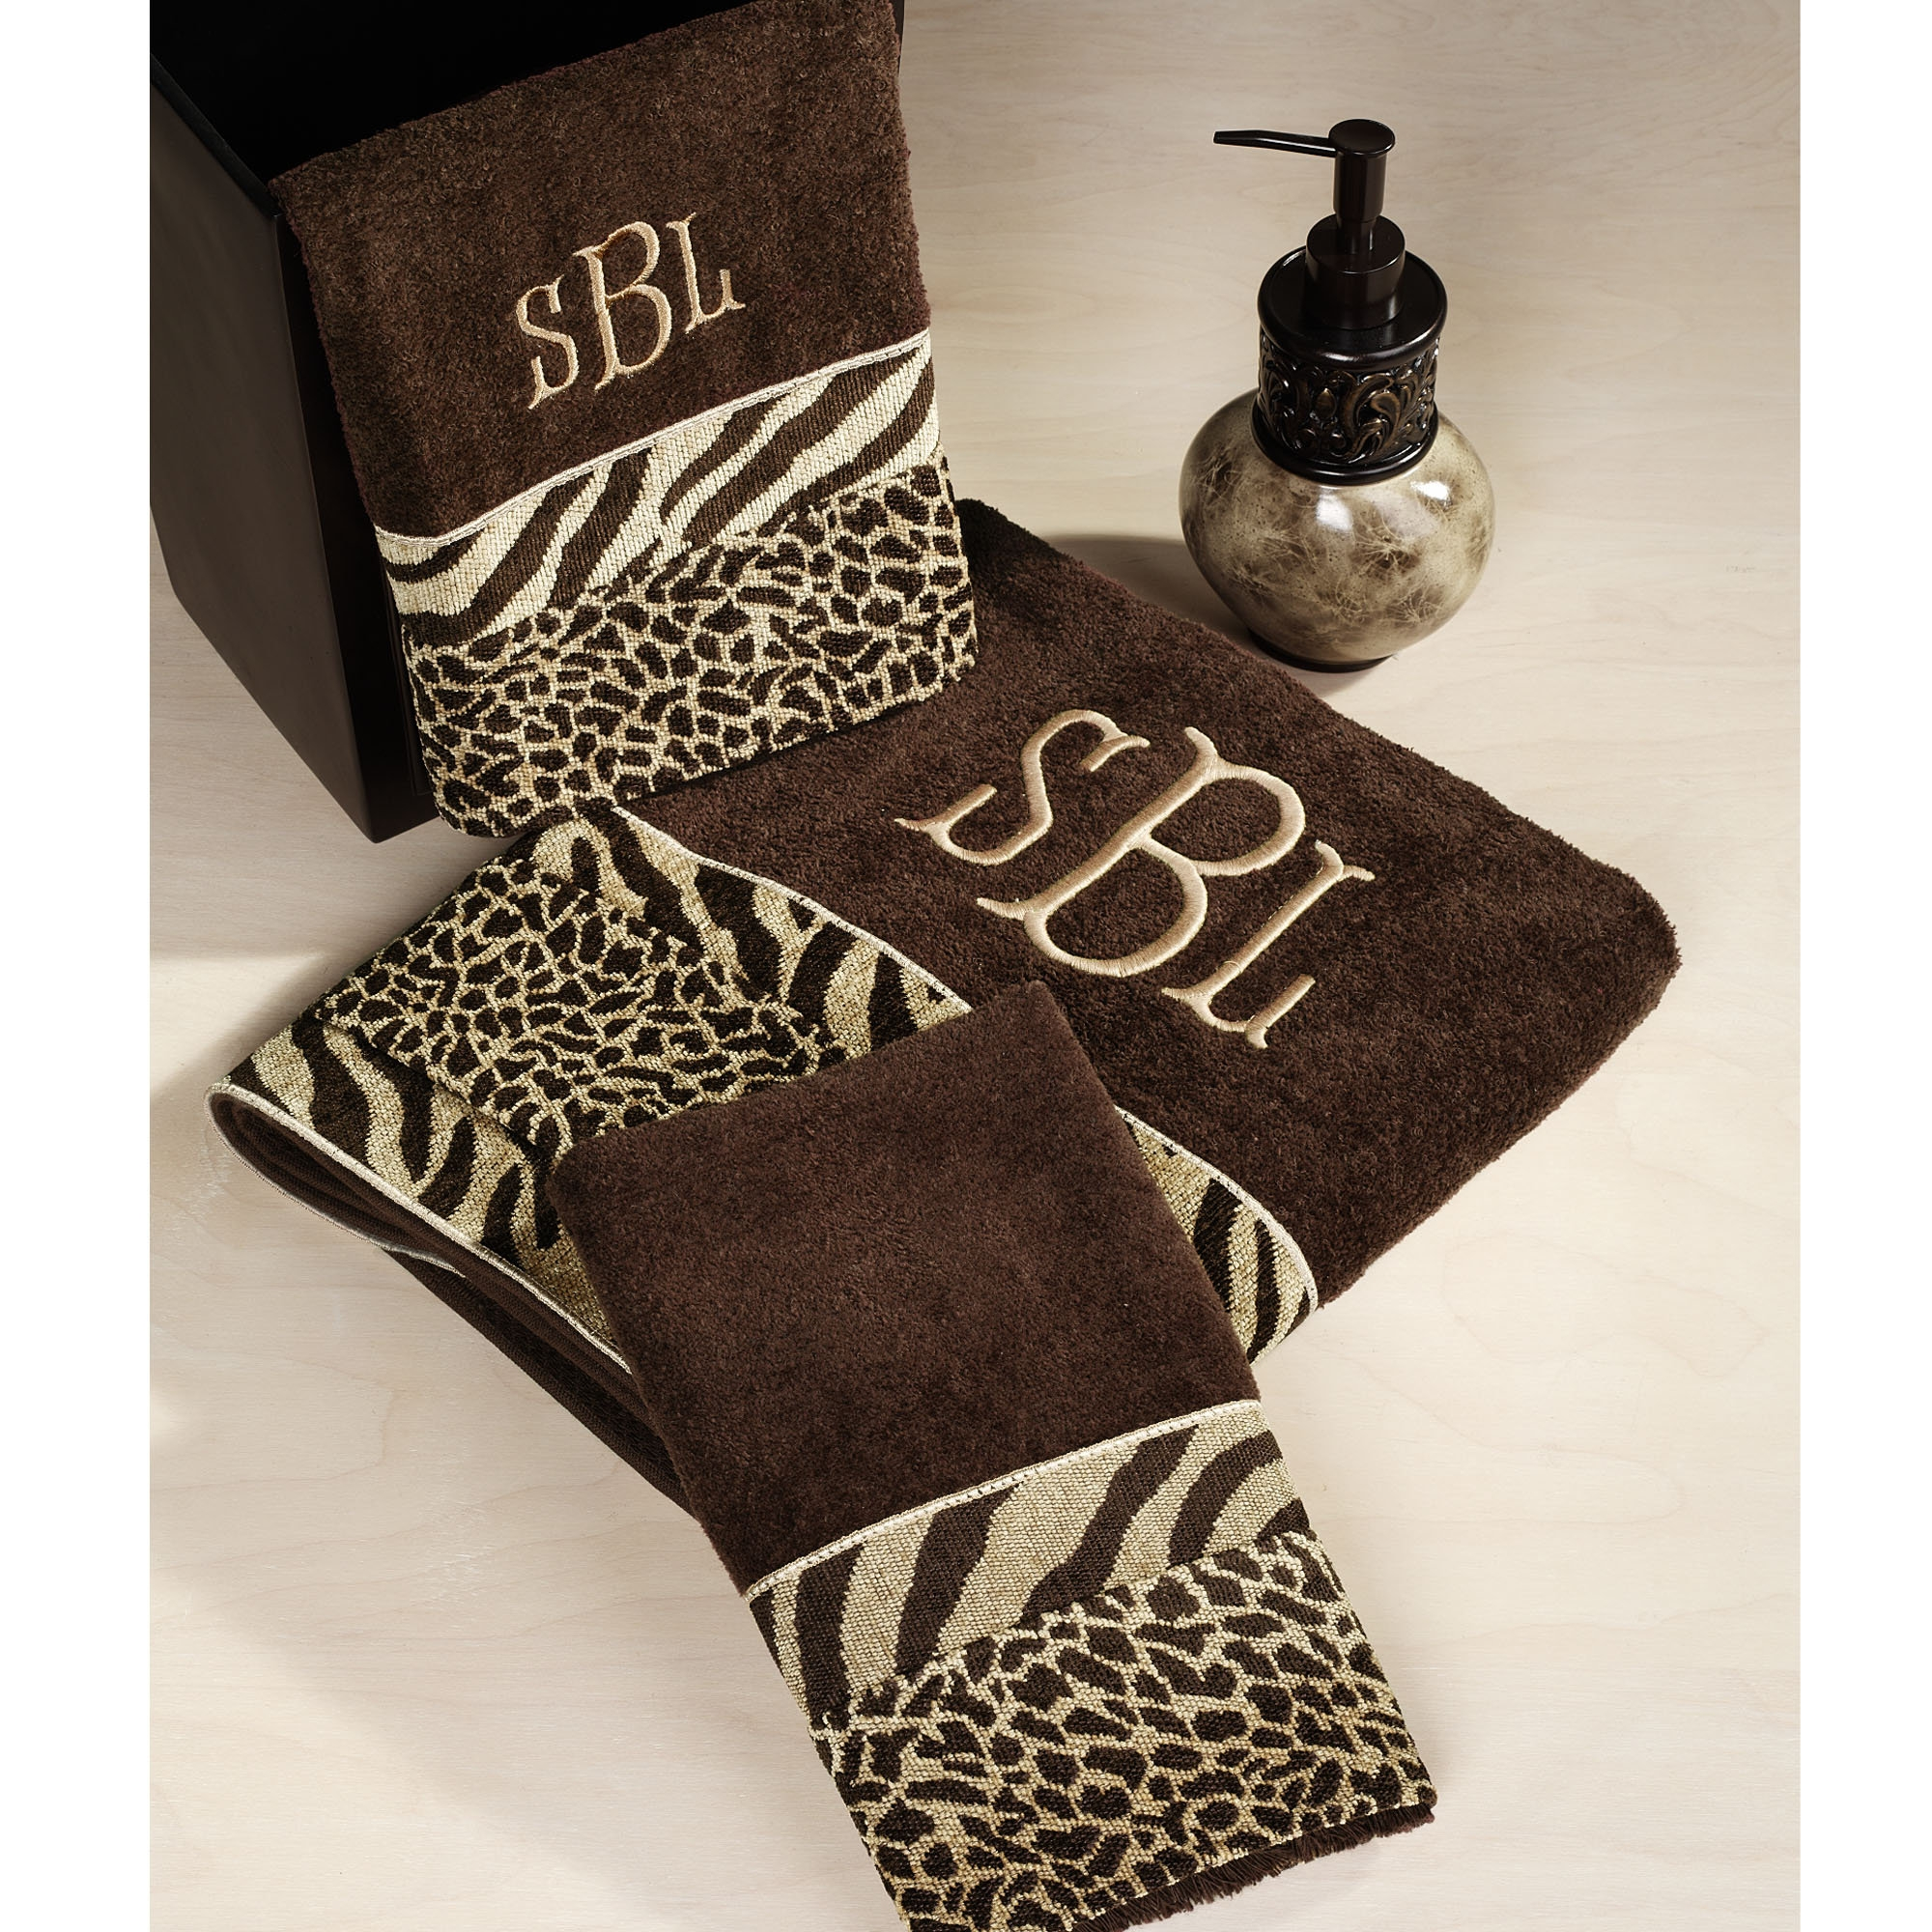 Zebra Print Bathroom Mats2000 X 2000